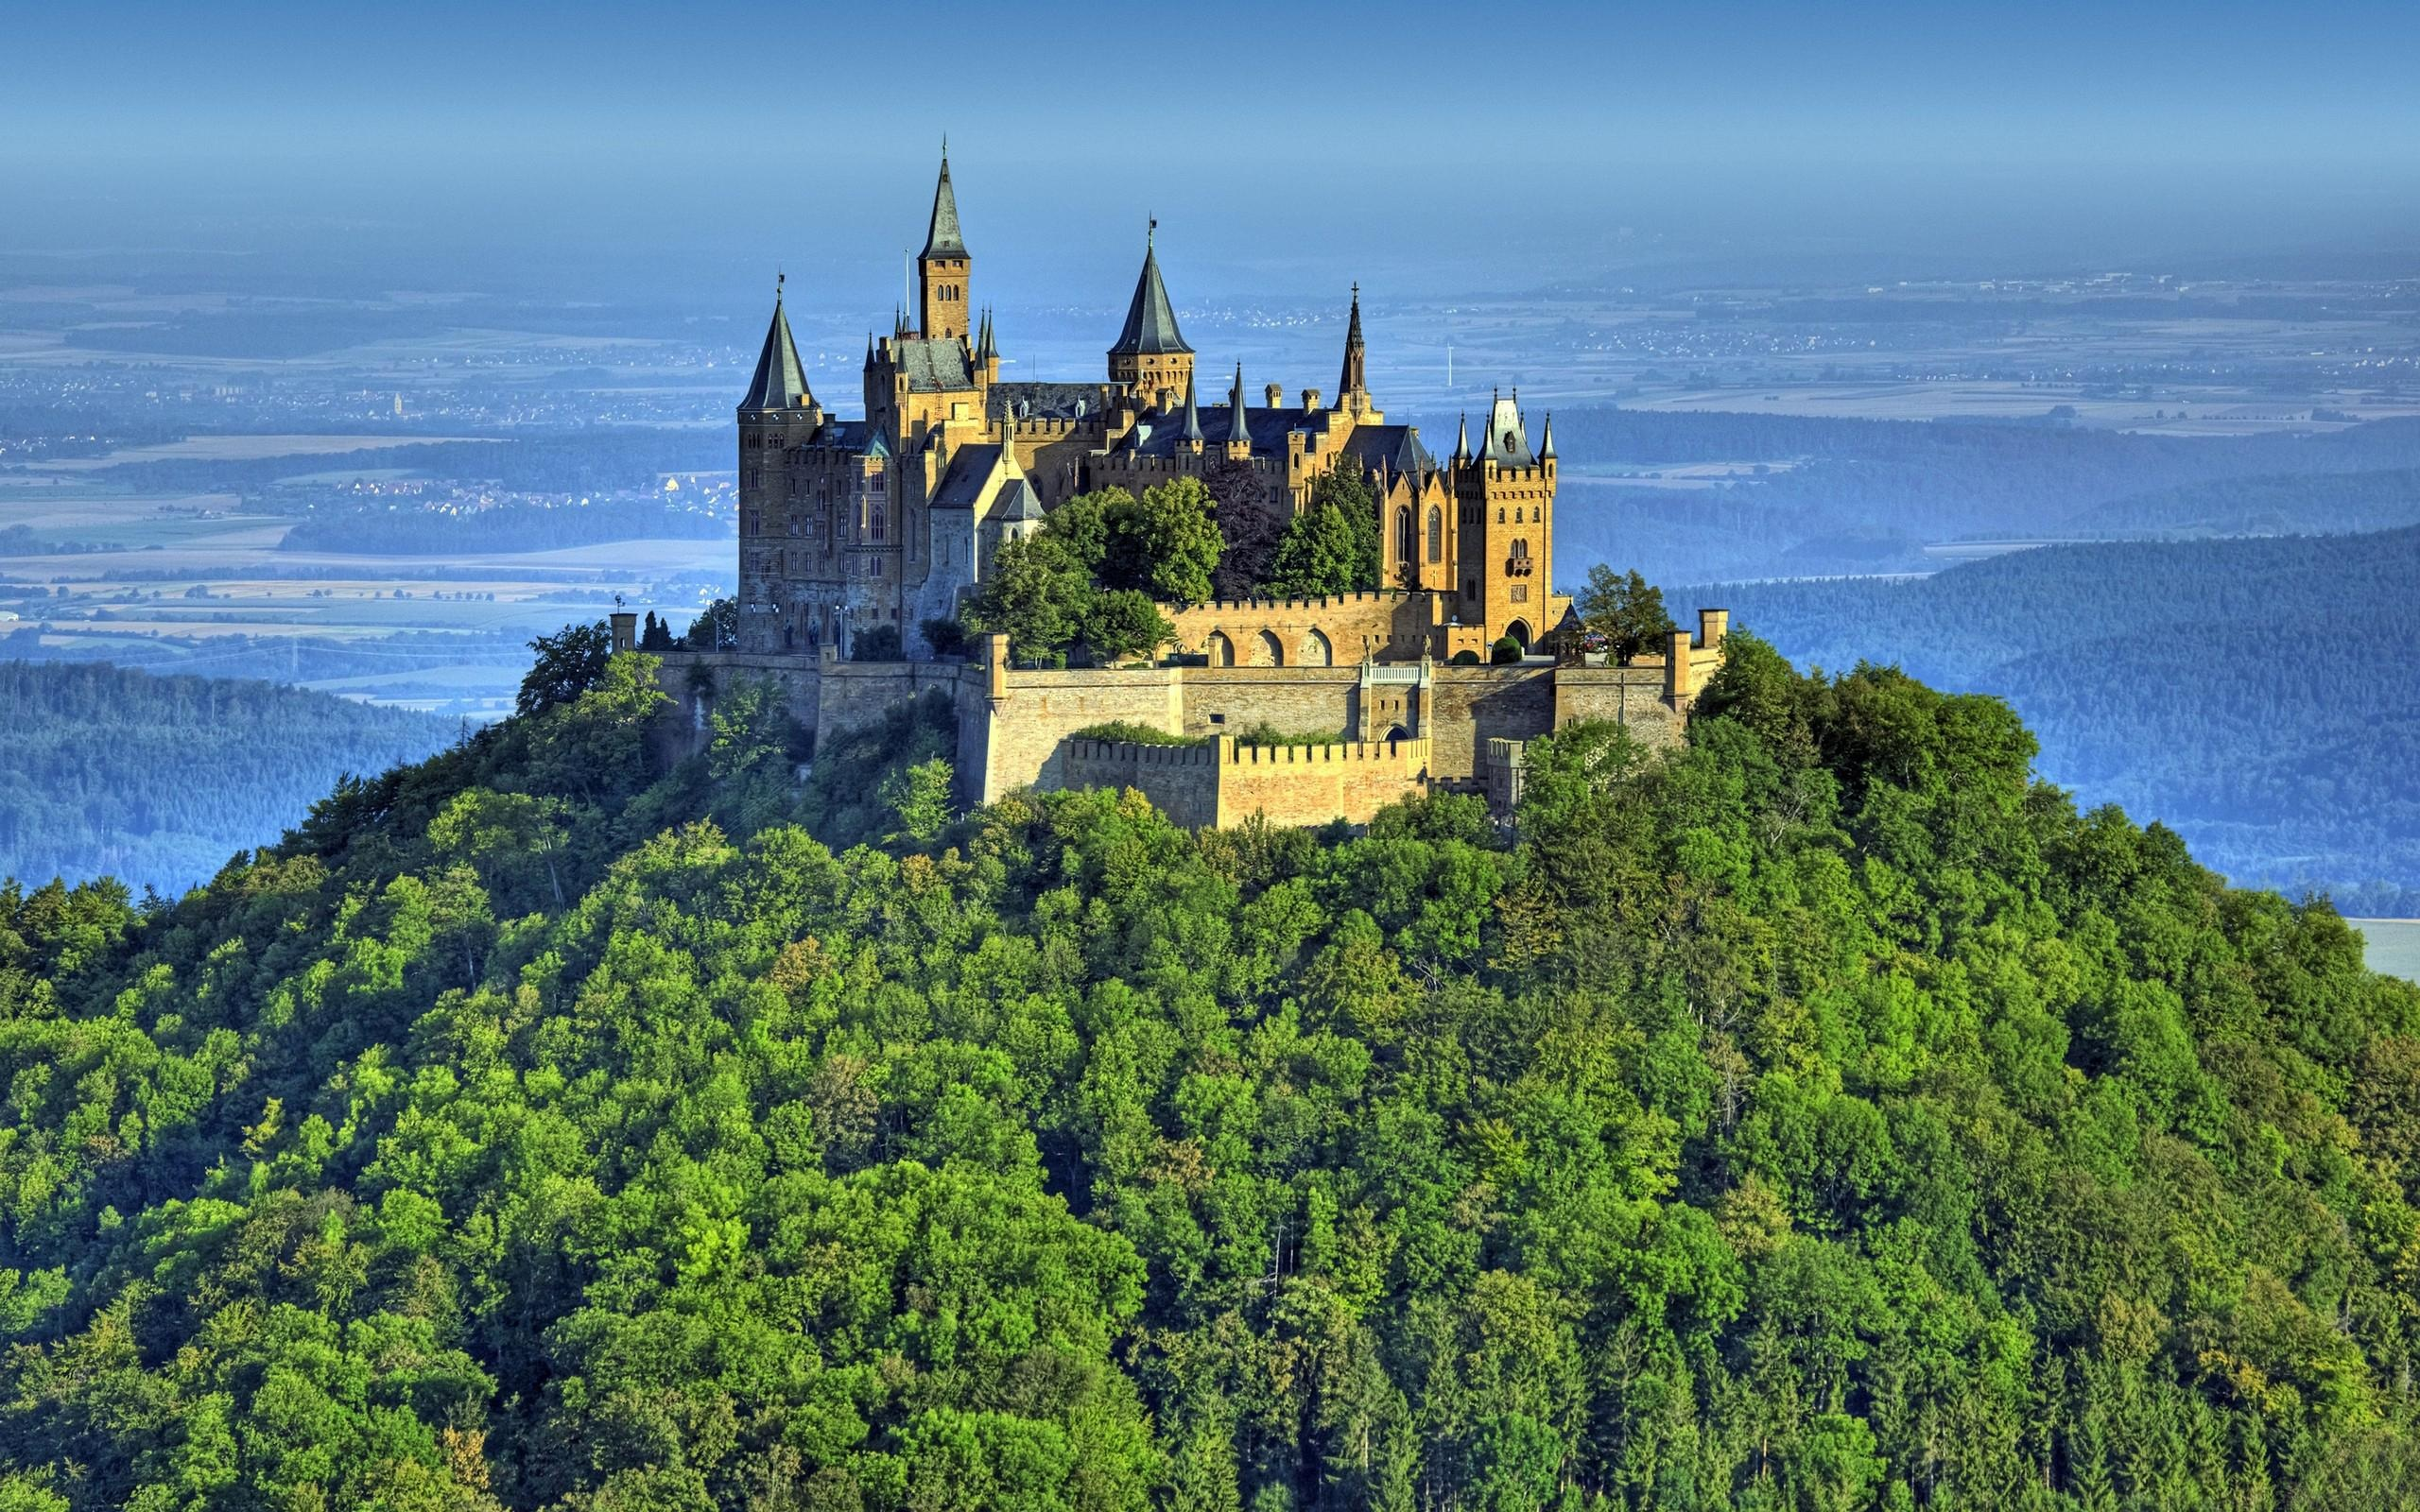 Hohenzollern Castle on the Hill in Germany 633.62 Kb